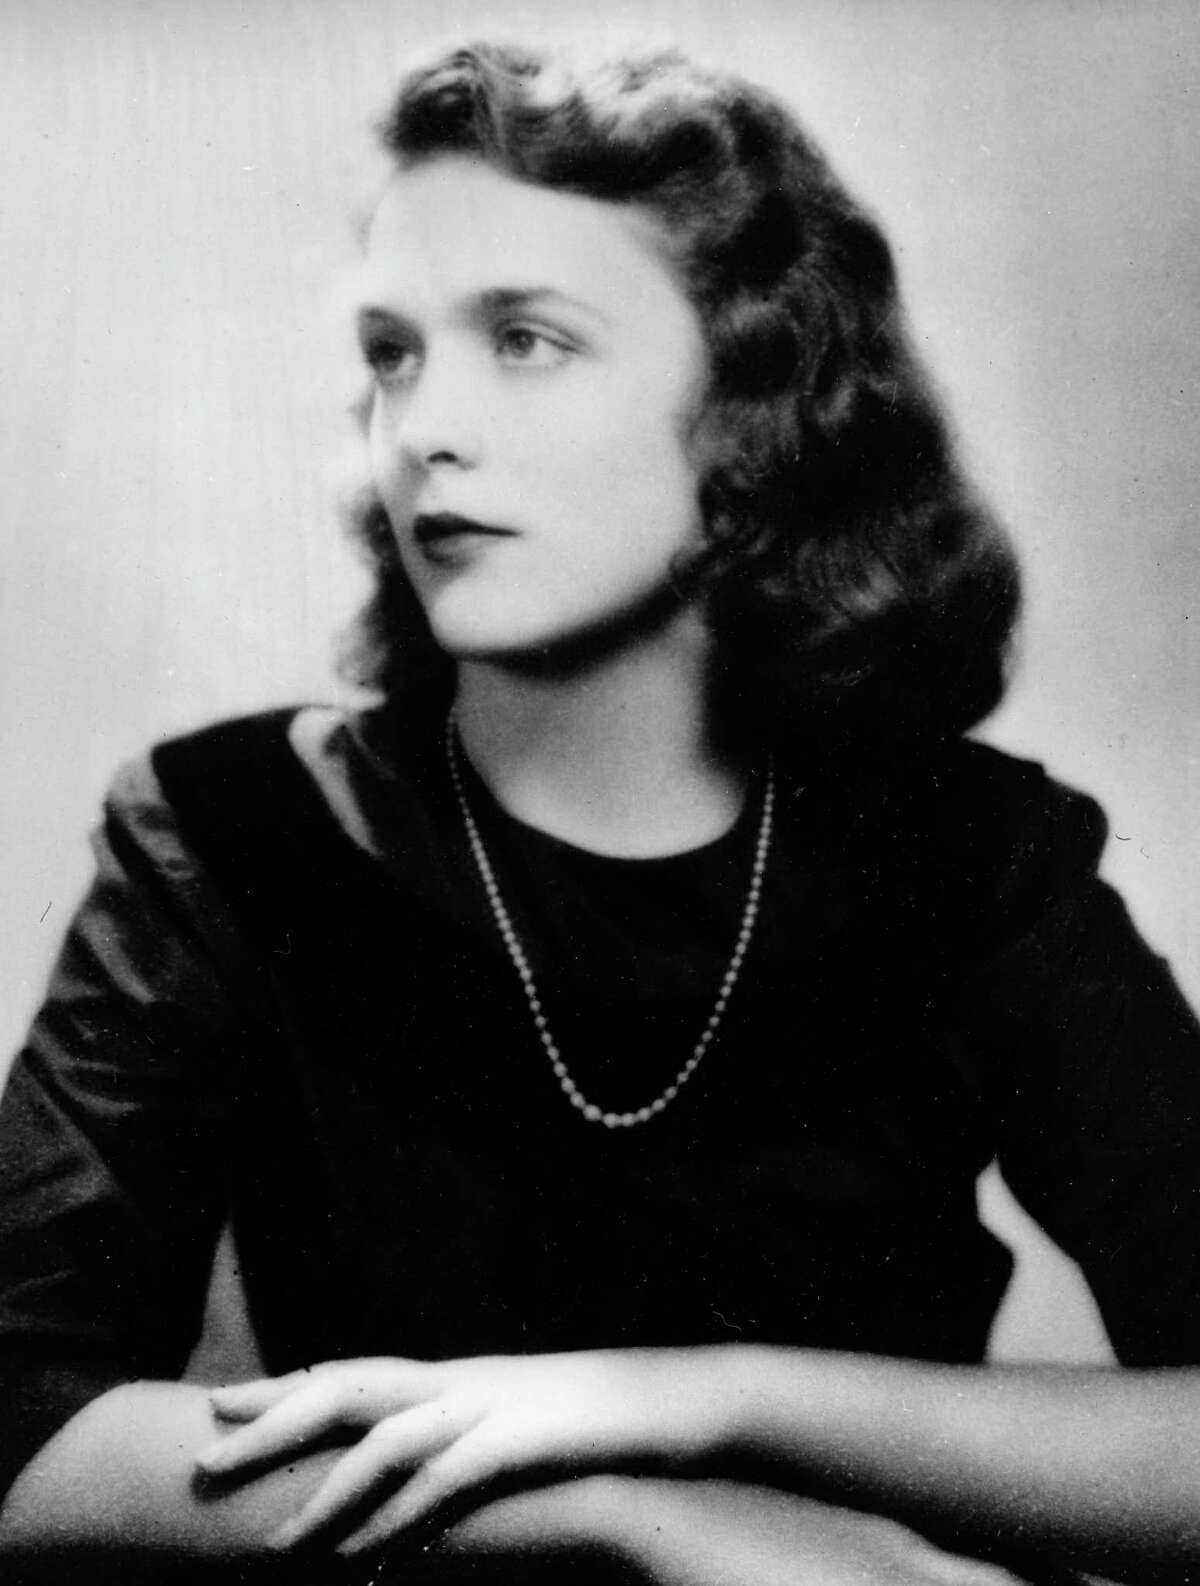 Barbara Pierce, the future Barbara Bush, is shown in her graduation photo from Ashley Hall, a finishing school in Charleston, S.C., in 1943. (AP Photo)